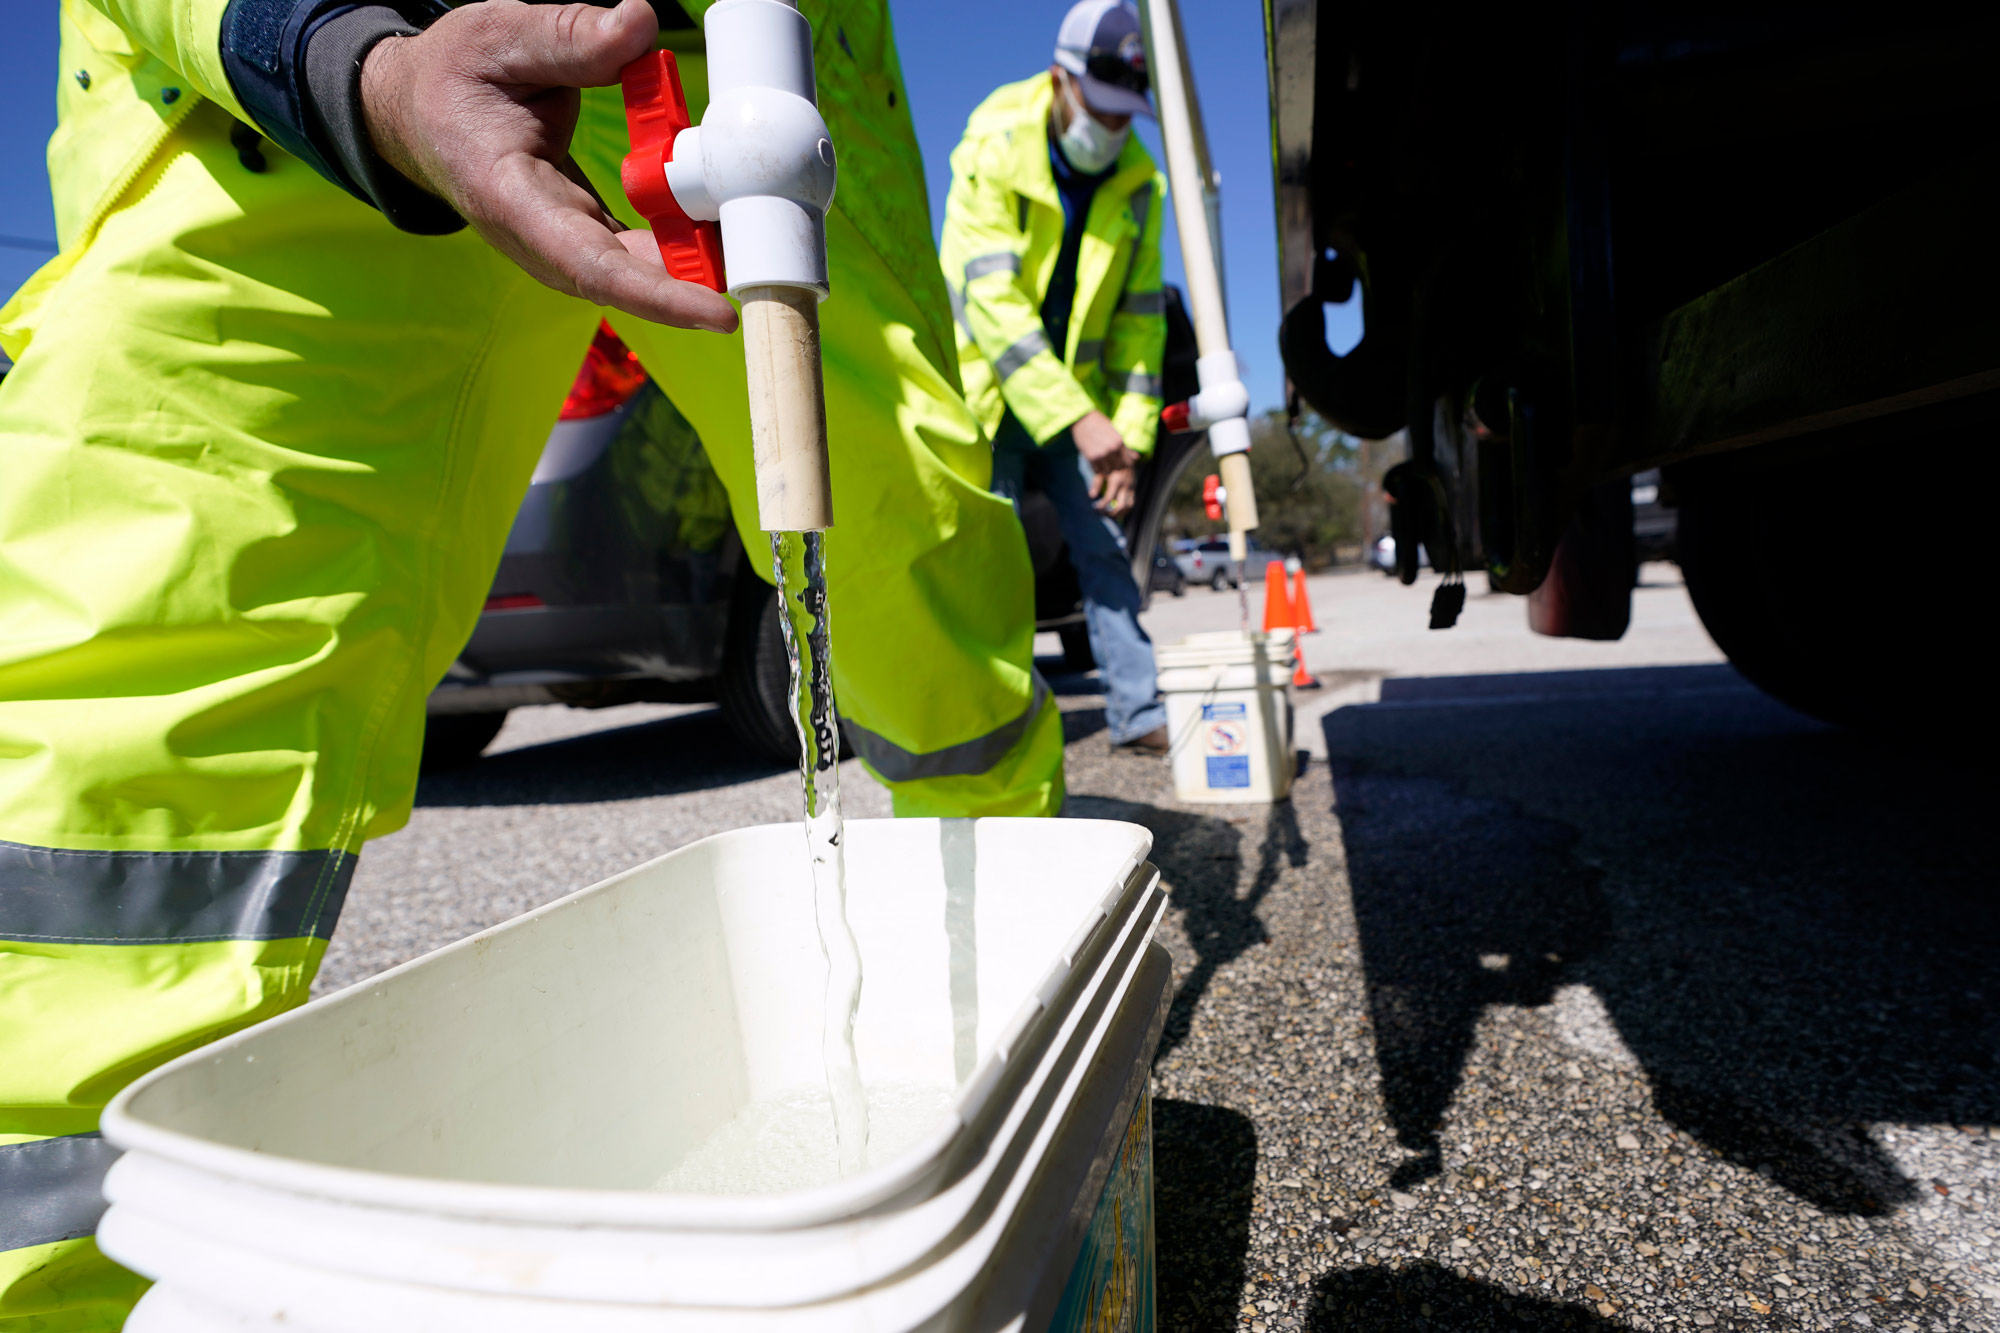 Containers are filled with non-potable water at a water distribution site on February 19 in Houston, Texas.